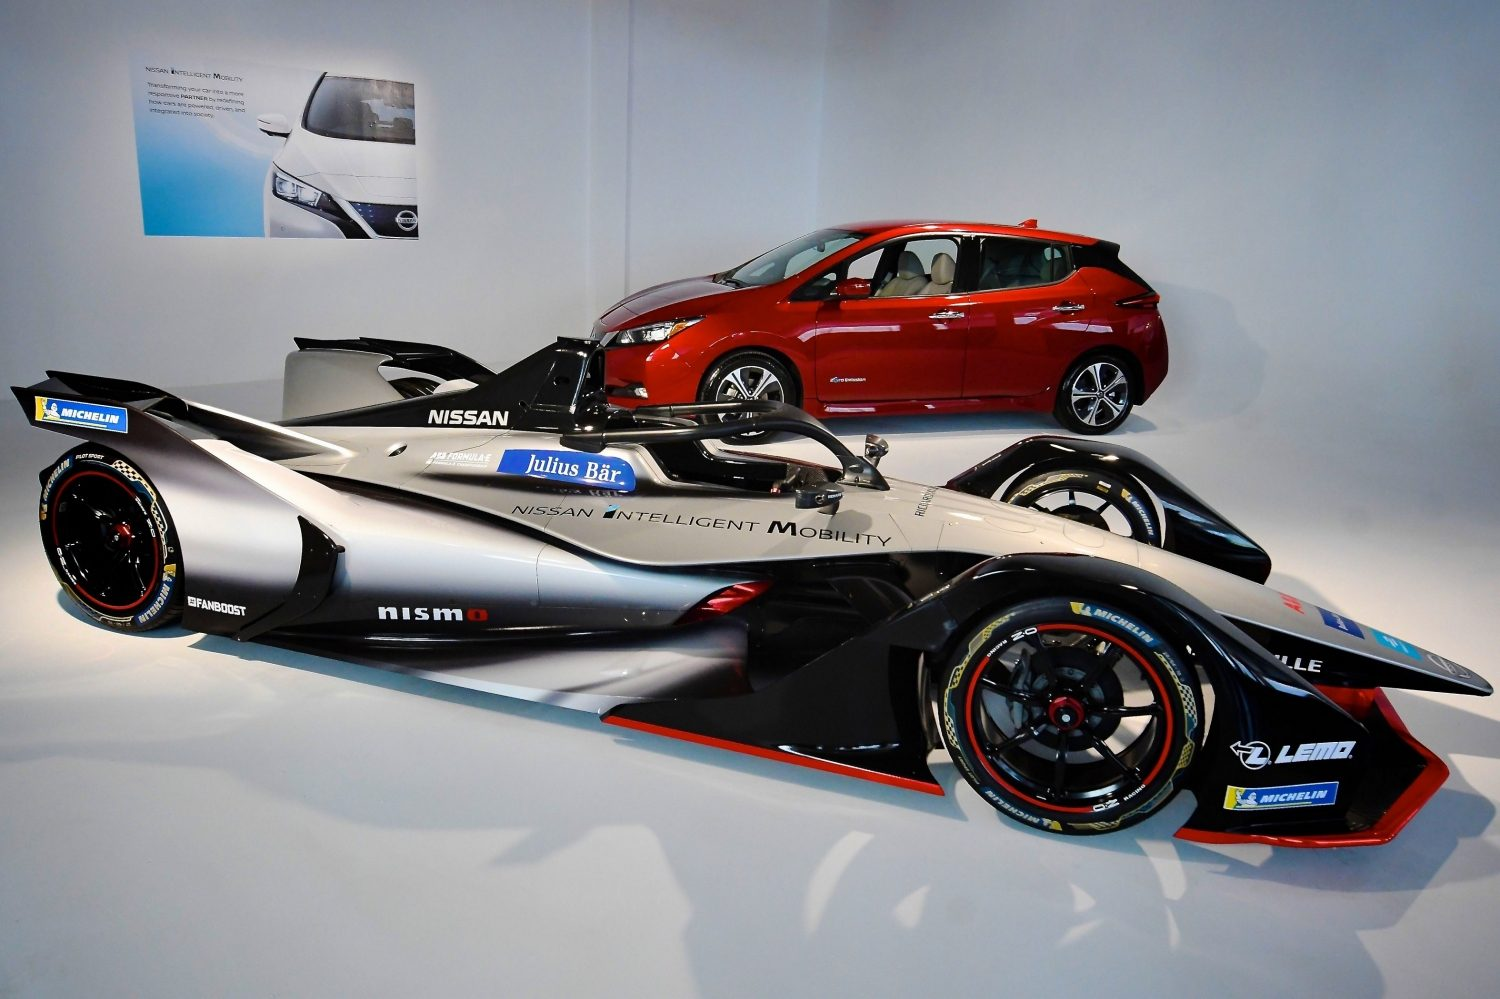 Nissan kicks off countdown to Formula E debut